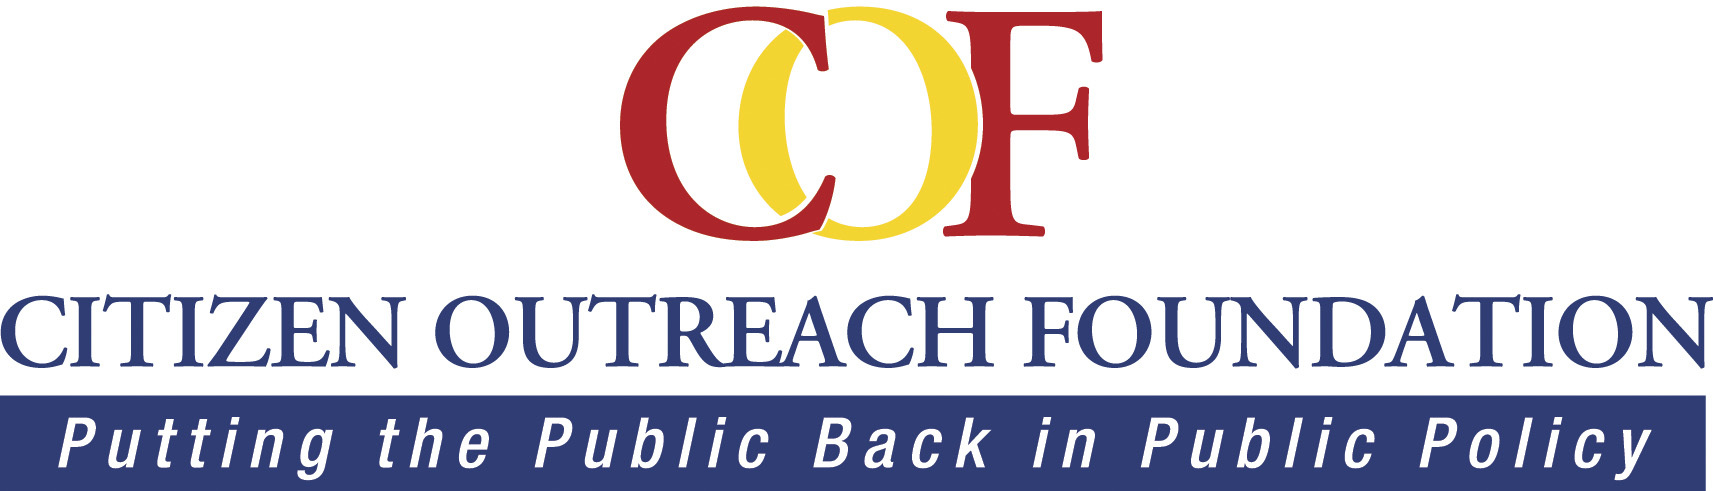 Citizen Outreach Foundation, Inc.: New Campaign